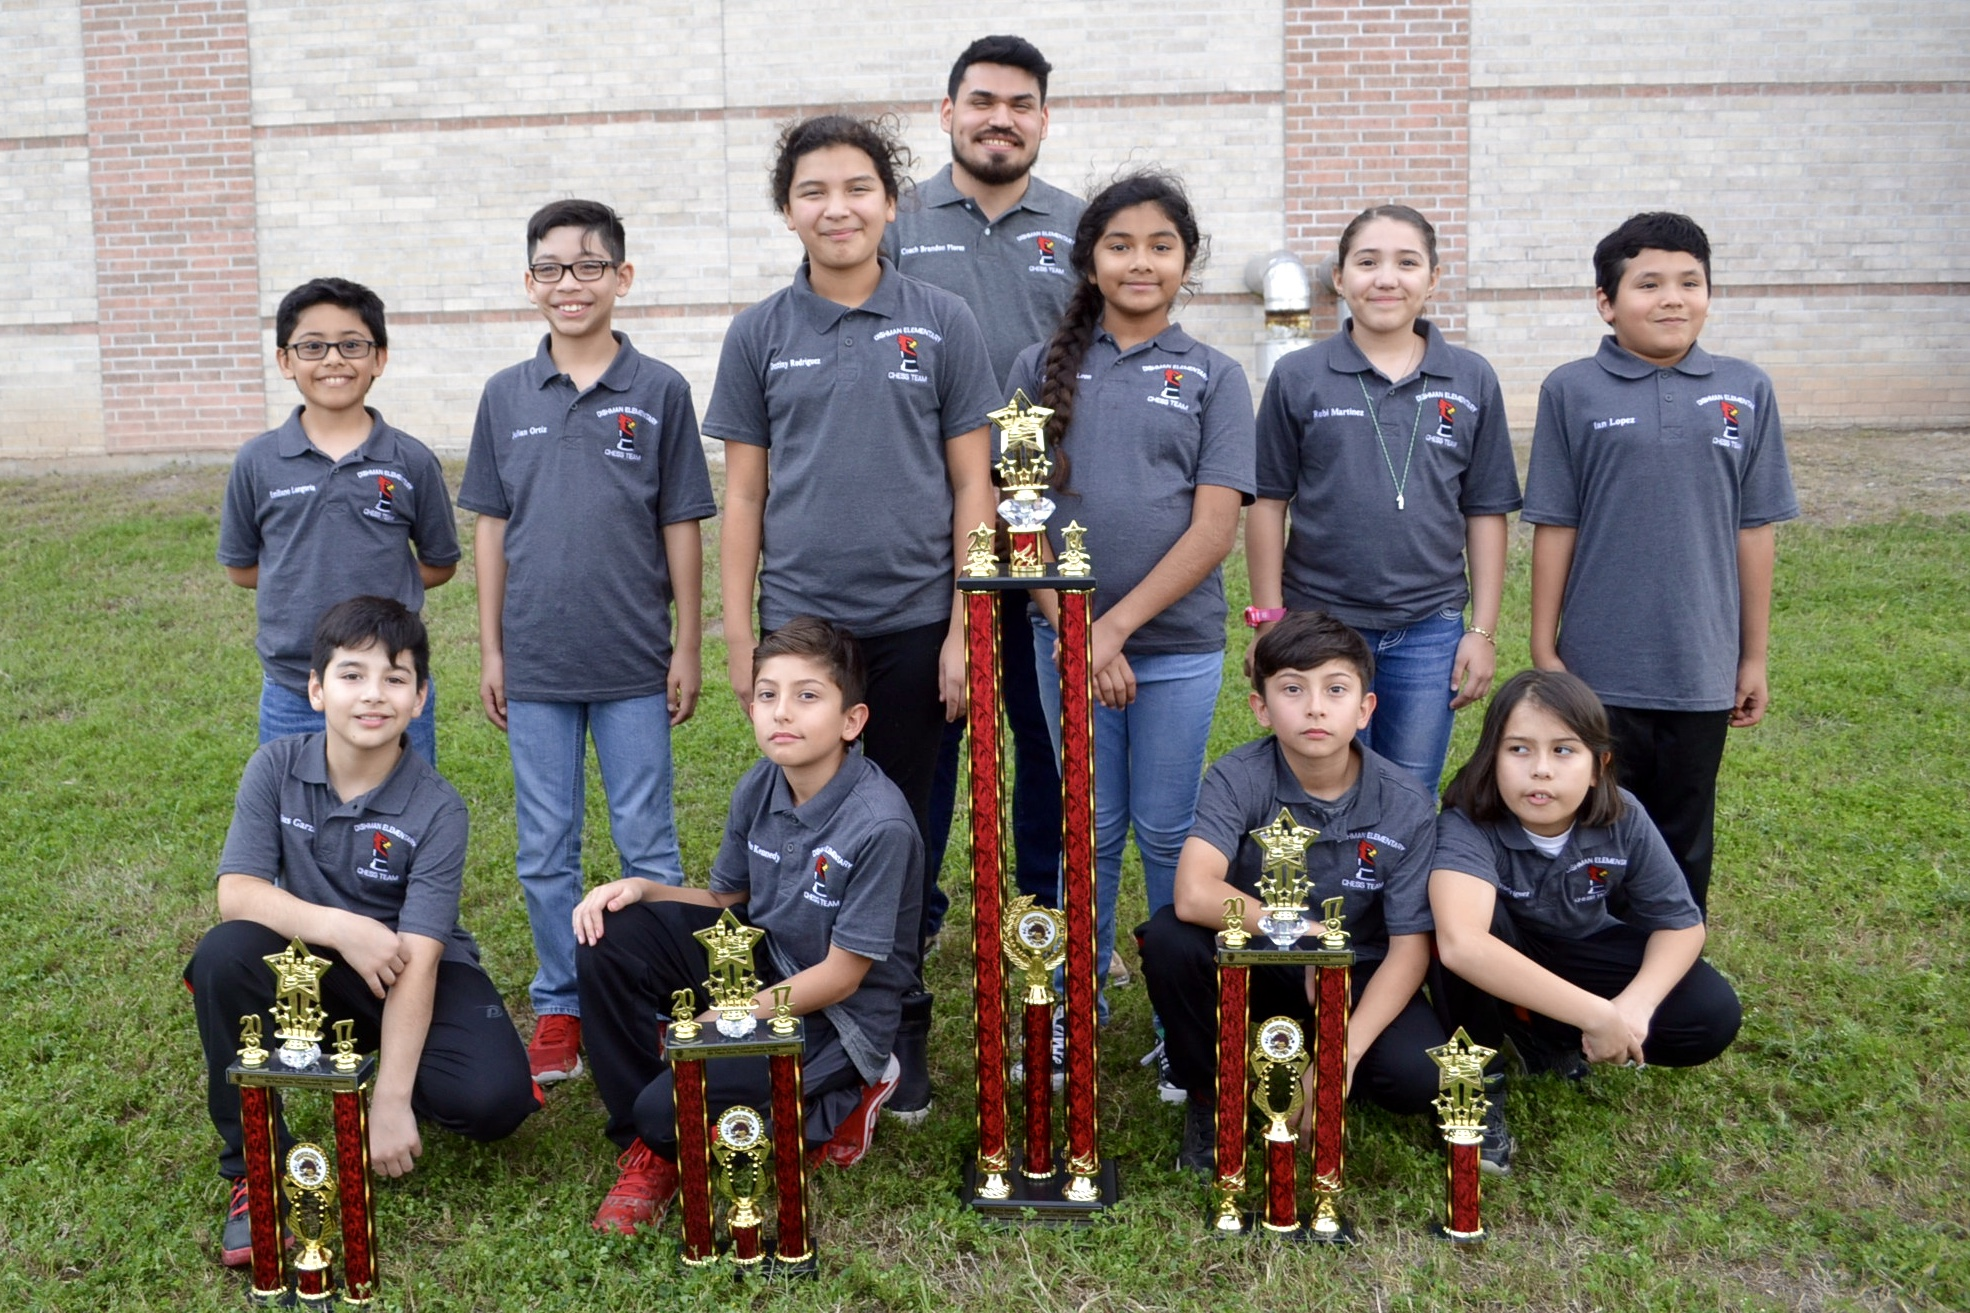 HCISD chess teams find success at Regional Championship